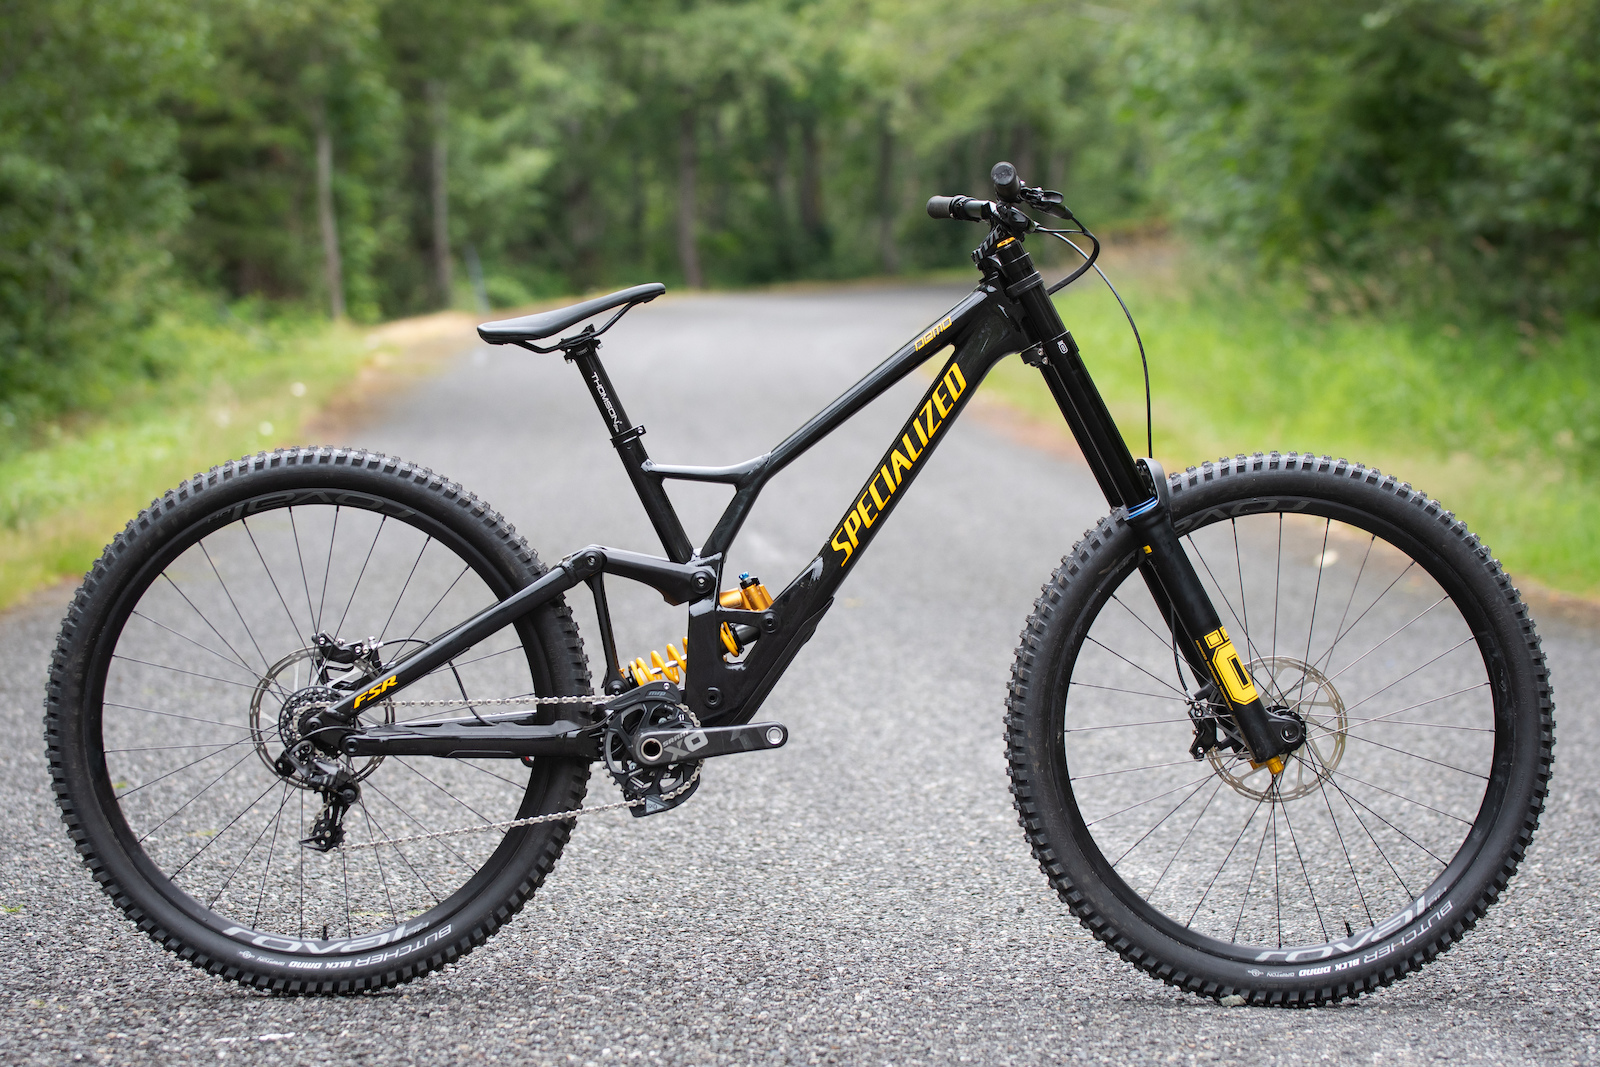 510901bbe46 First Ride: The 2020 Demo 29 - Specialized's New Aluminum DH Race ...